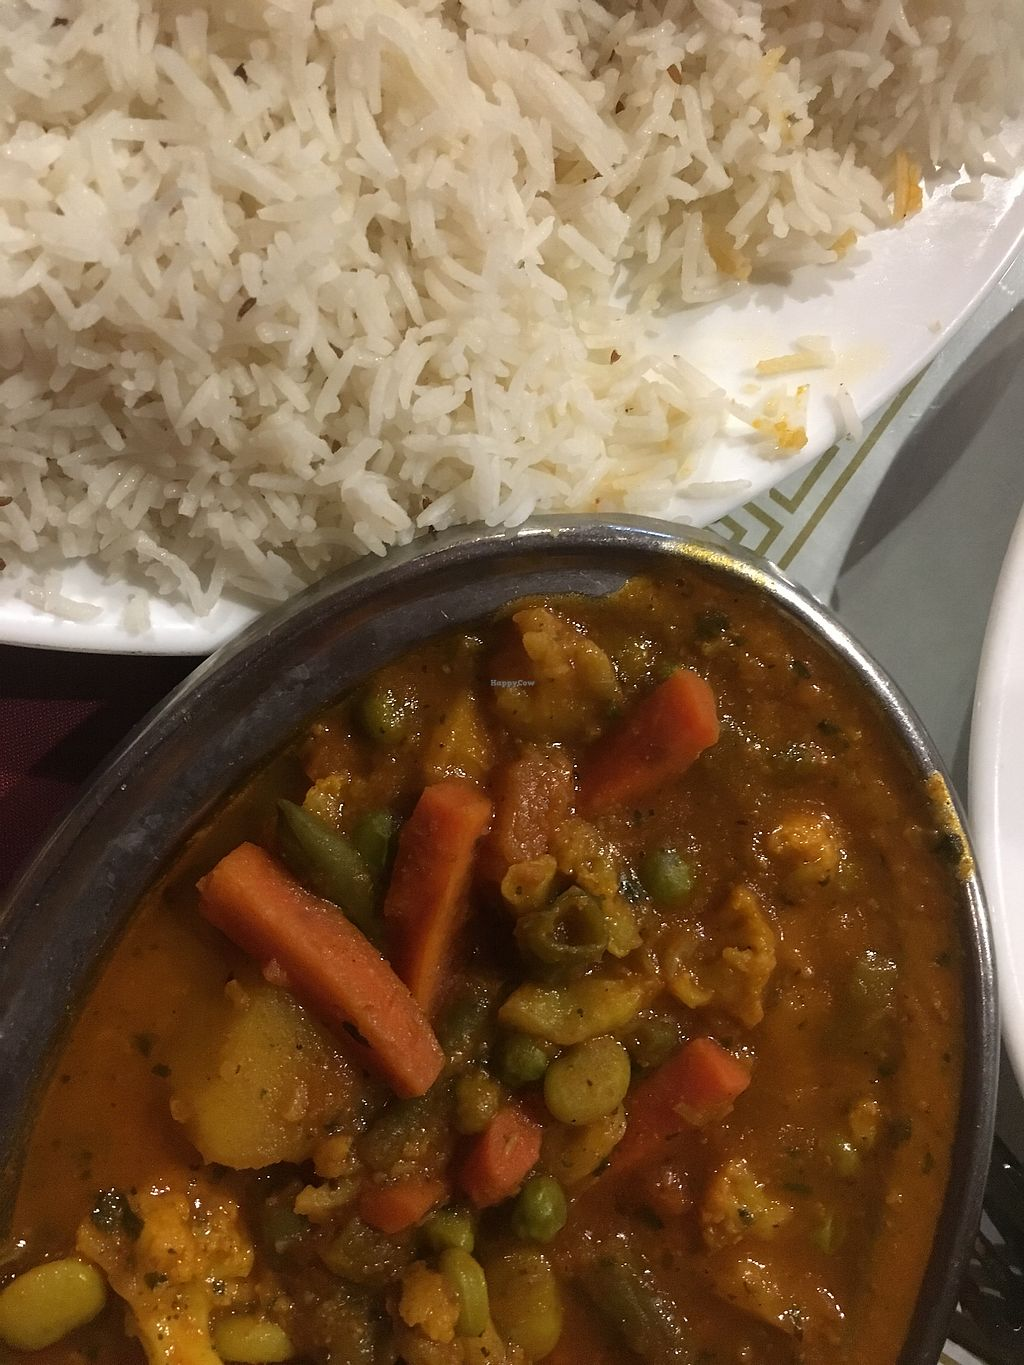 """Photo of Sitar Indian Cuisine  by <a href=""""/members/profile/CColors"""">CColors</a> <br/>Vegan dish unlimited rice <br/> March 11, 2018  - <a href='/contact/abuse/image/51266/369106'>Report</a>"""